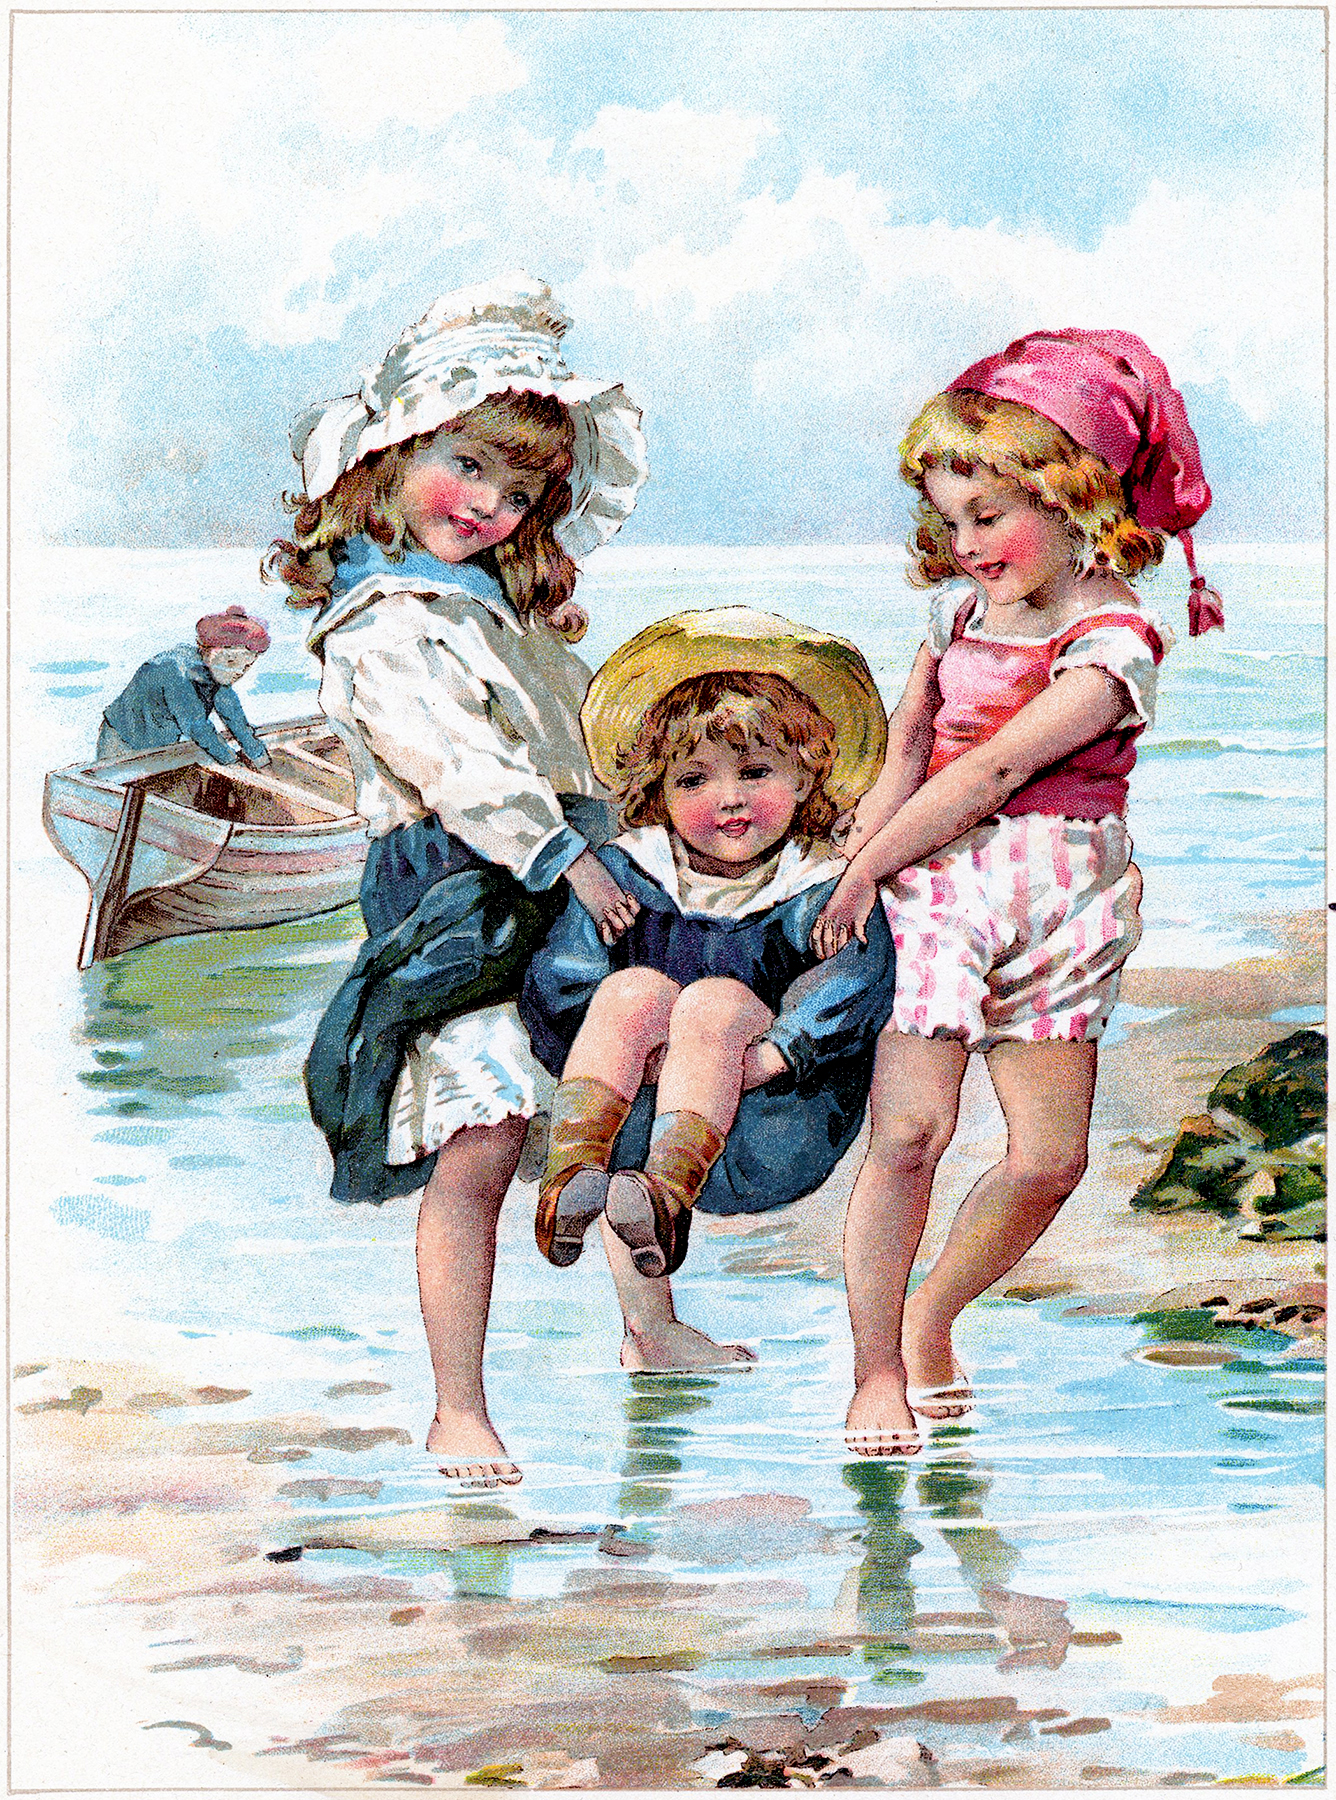 Children Playing in Ocean Image